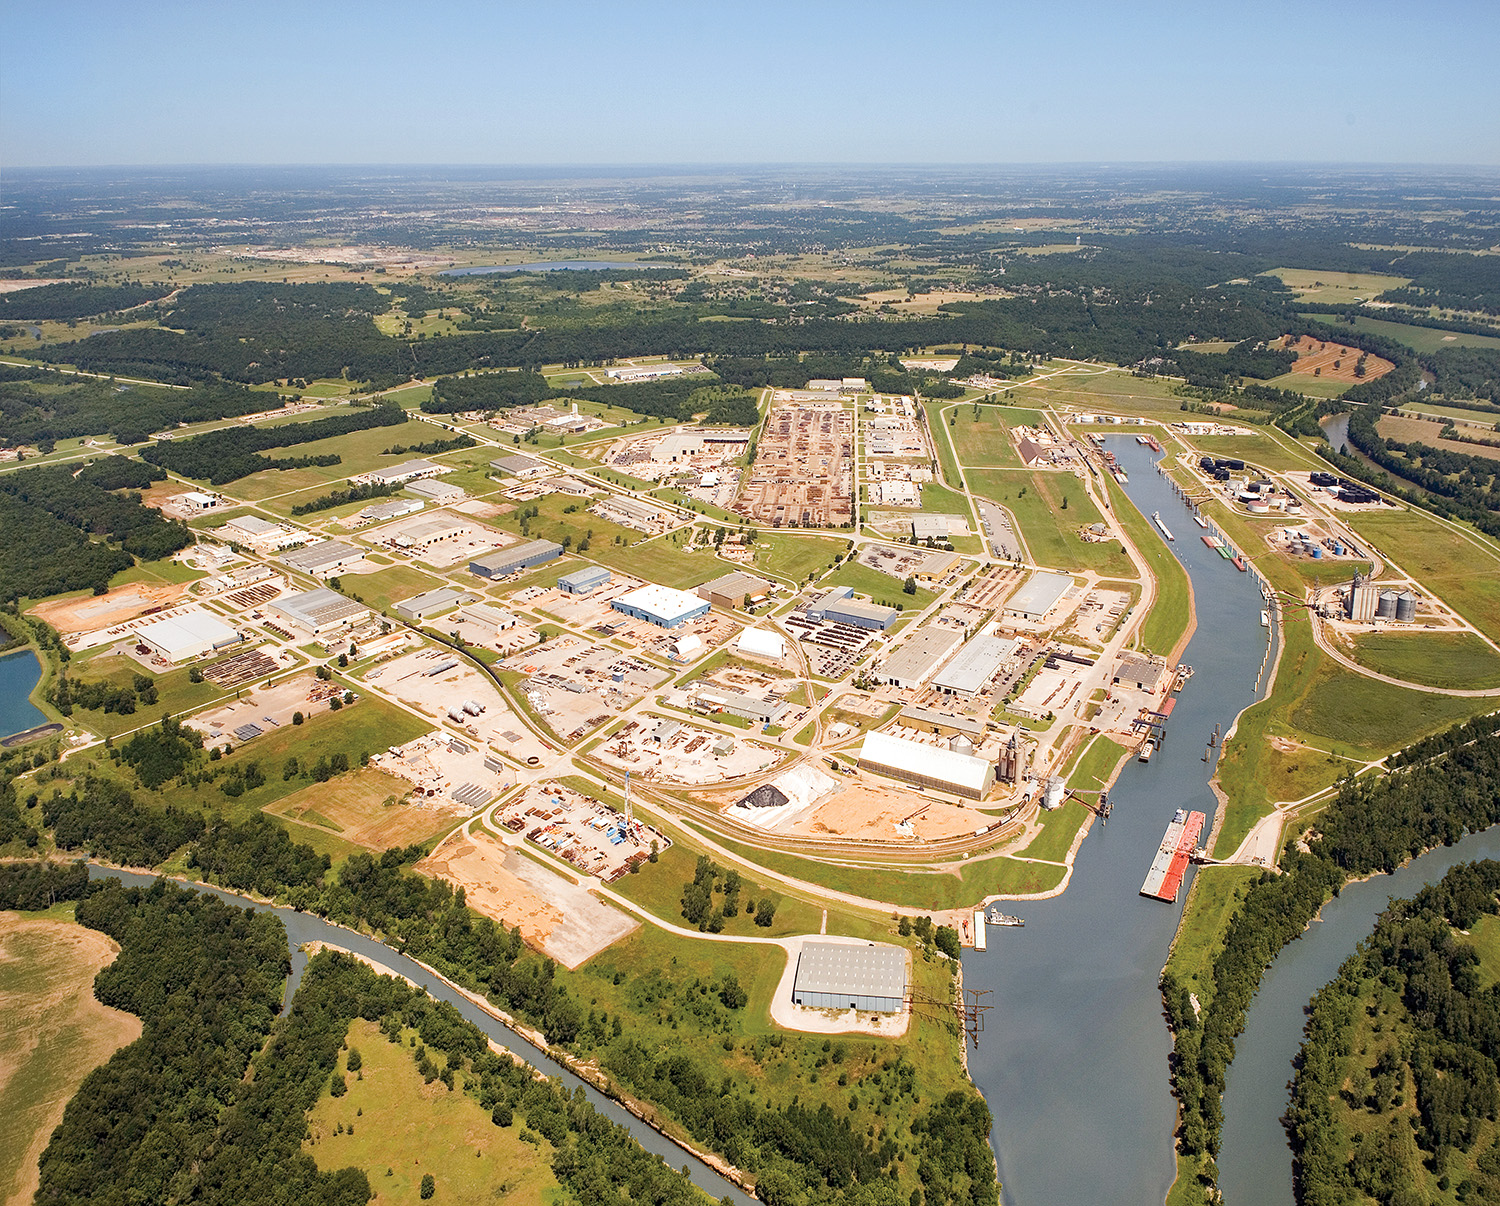 Aerial view of the Tulsa Port of Catoosa.